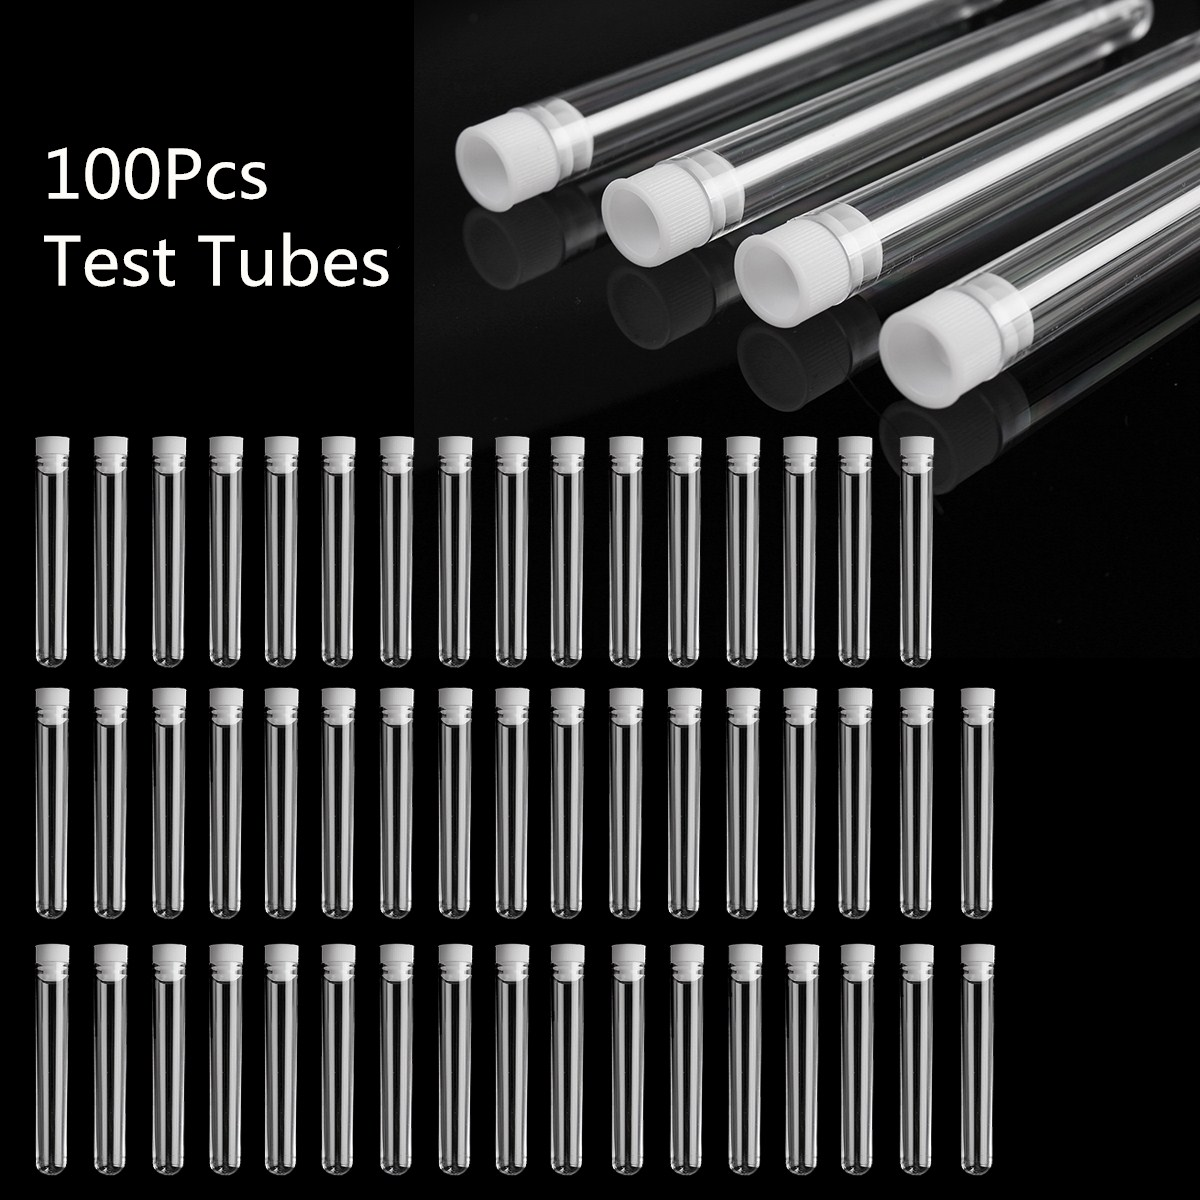 100Pcs Clear Plastic Test Tube With Cap 12x100mm U-shaped Bottom Long Transparent Test Tube Lab Supplies